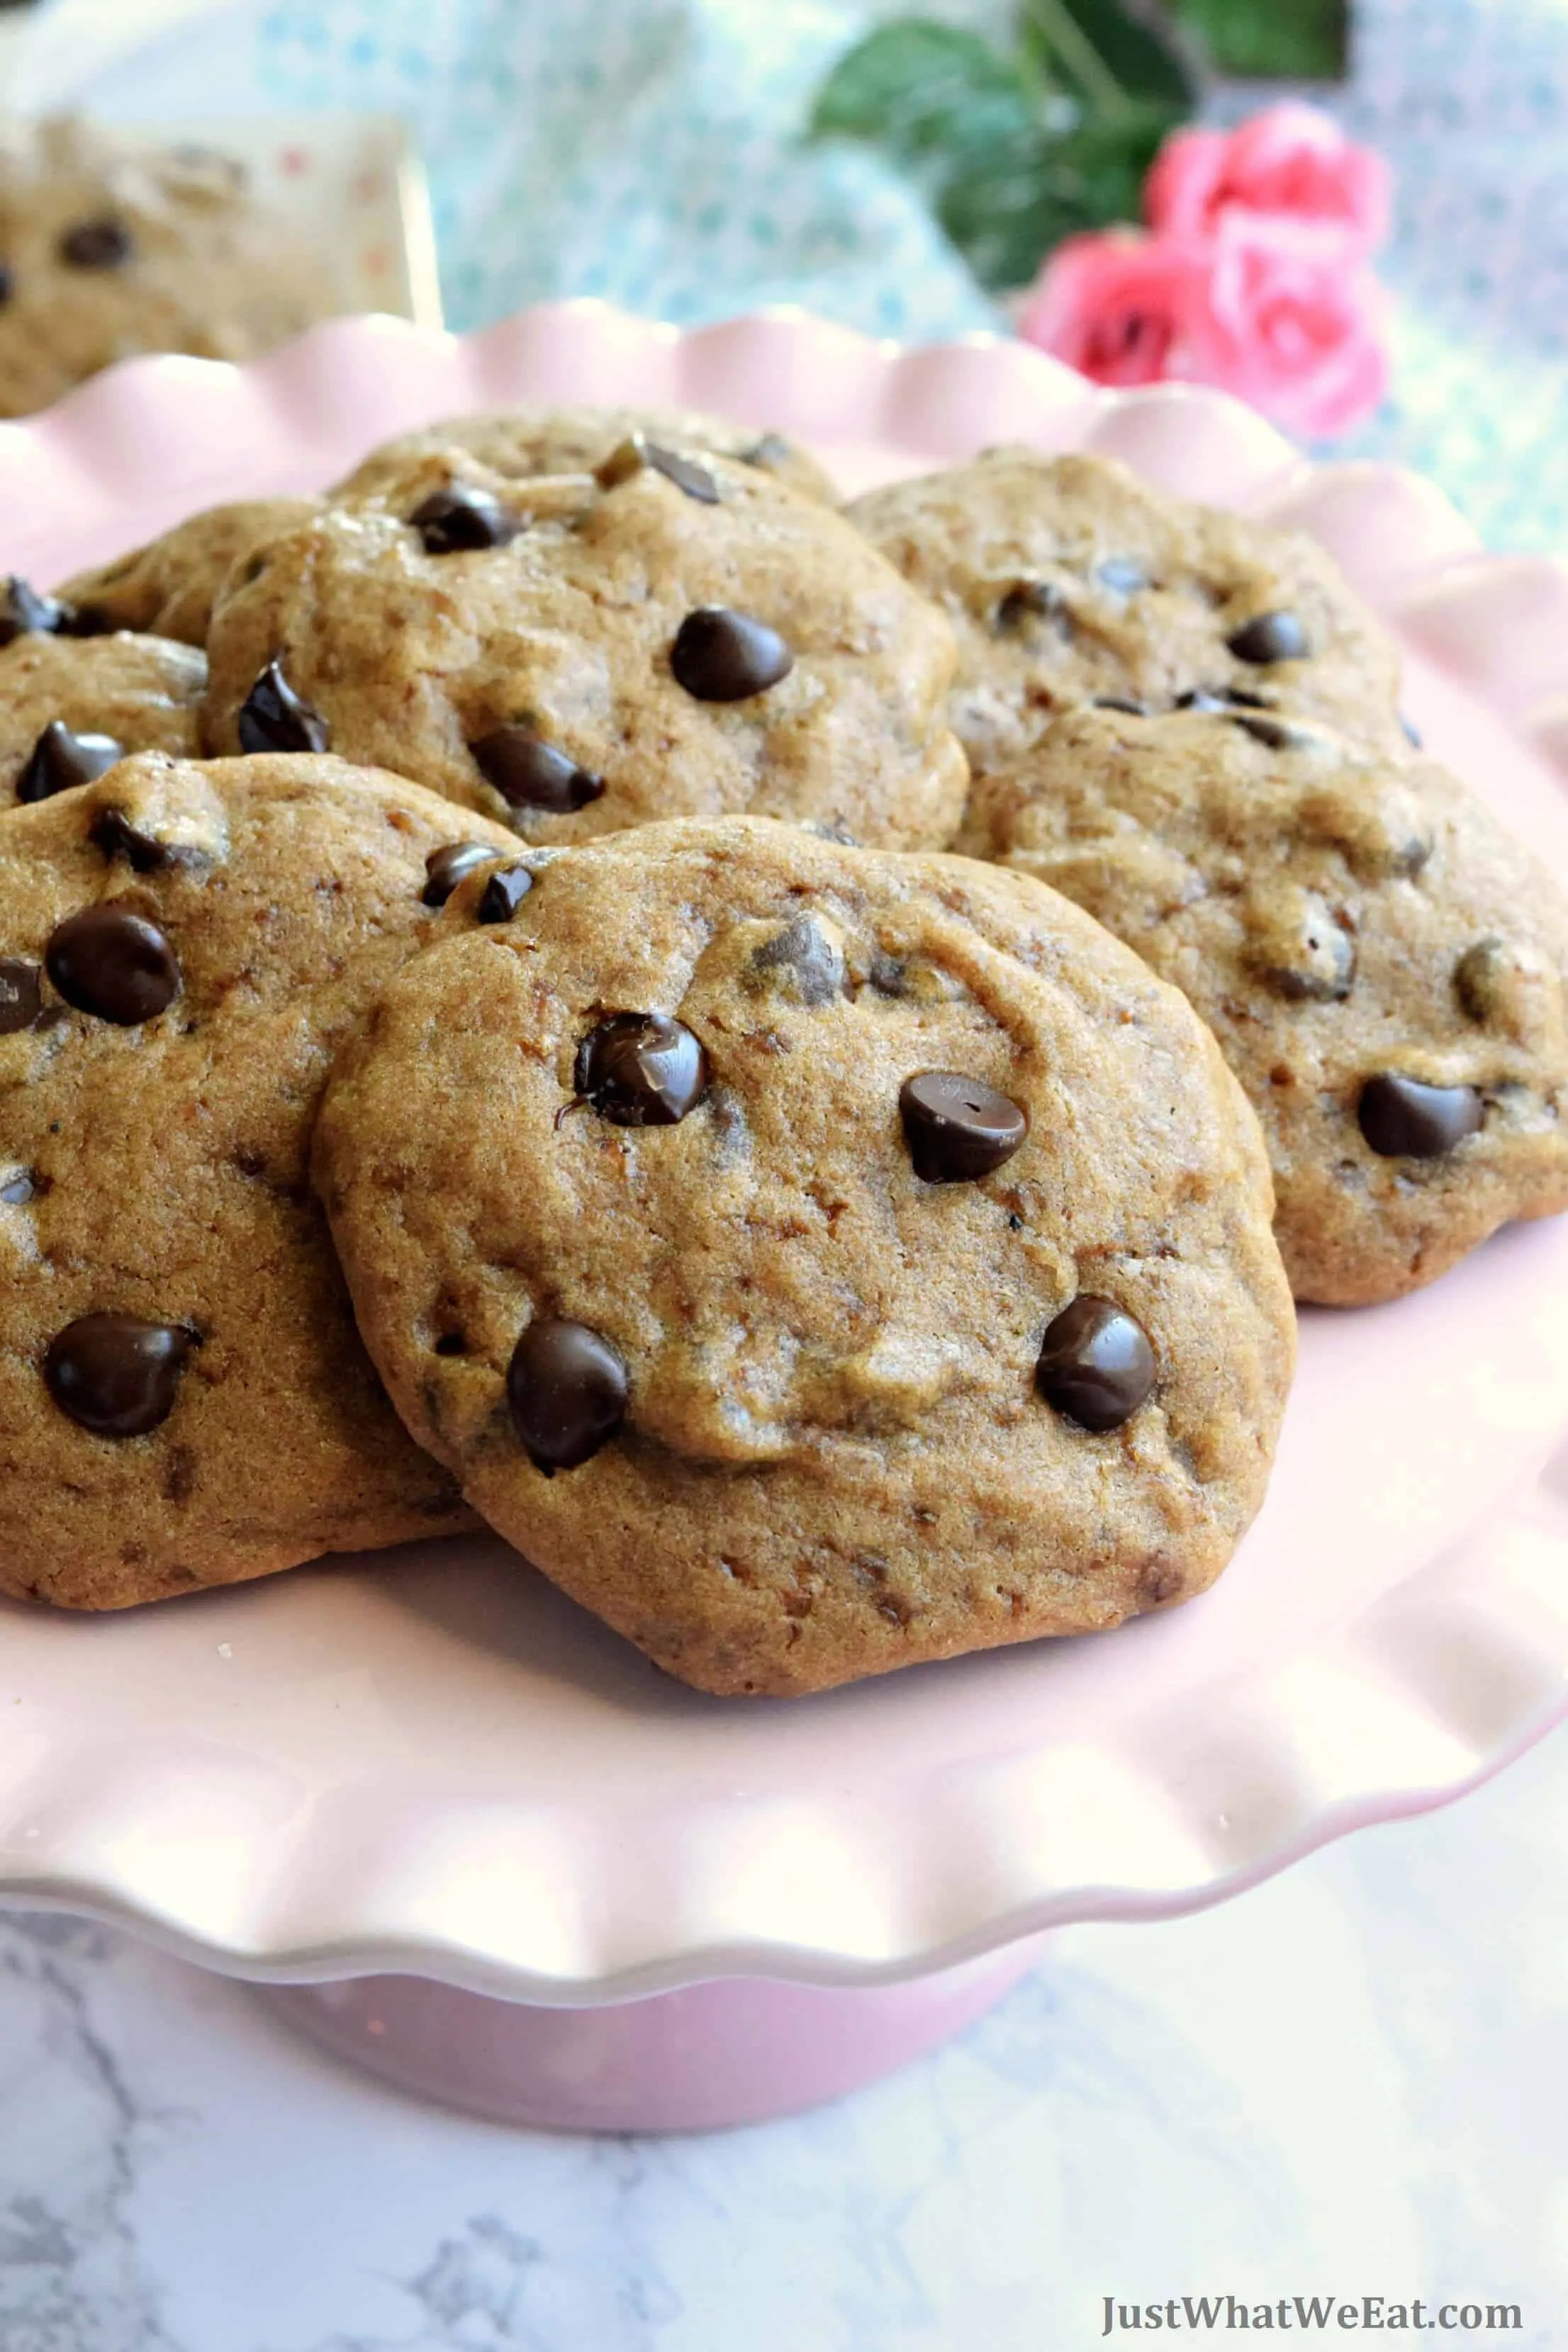 Chocolate Chip Cookies - Gluten Free & Vegan